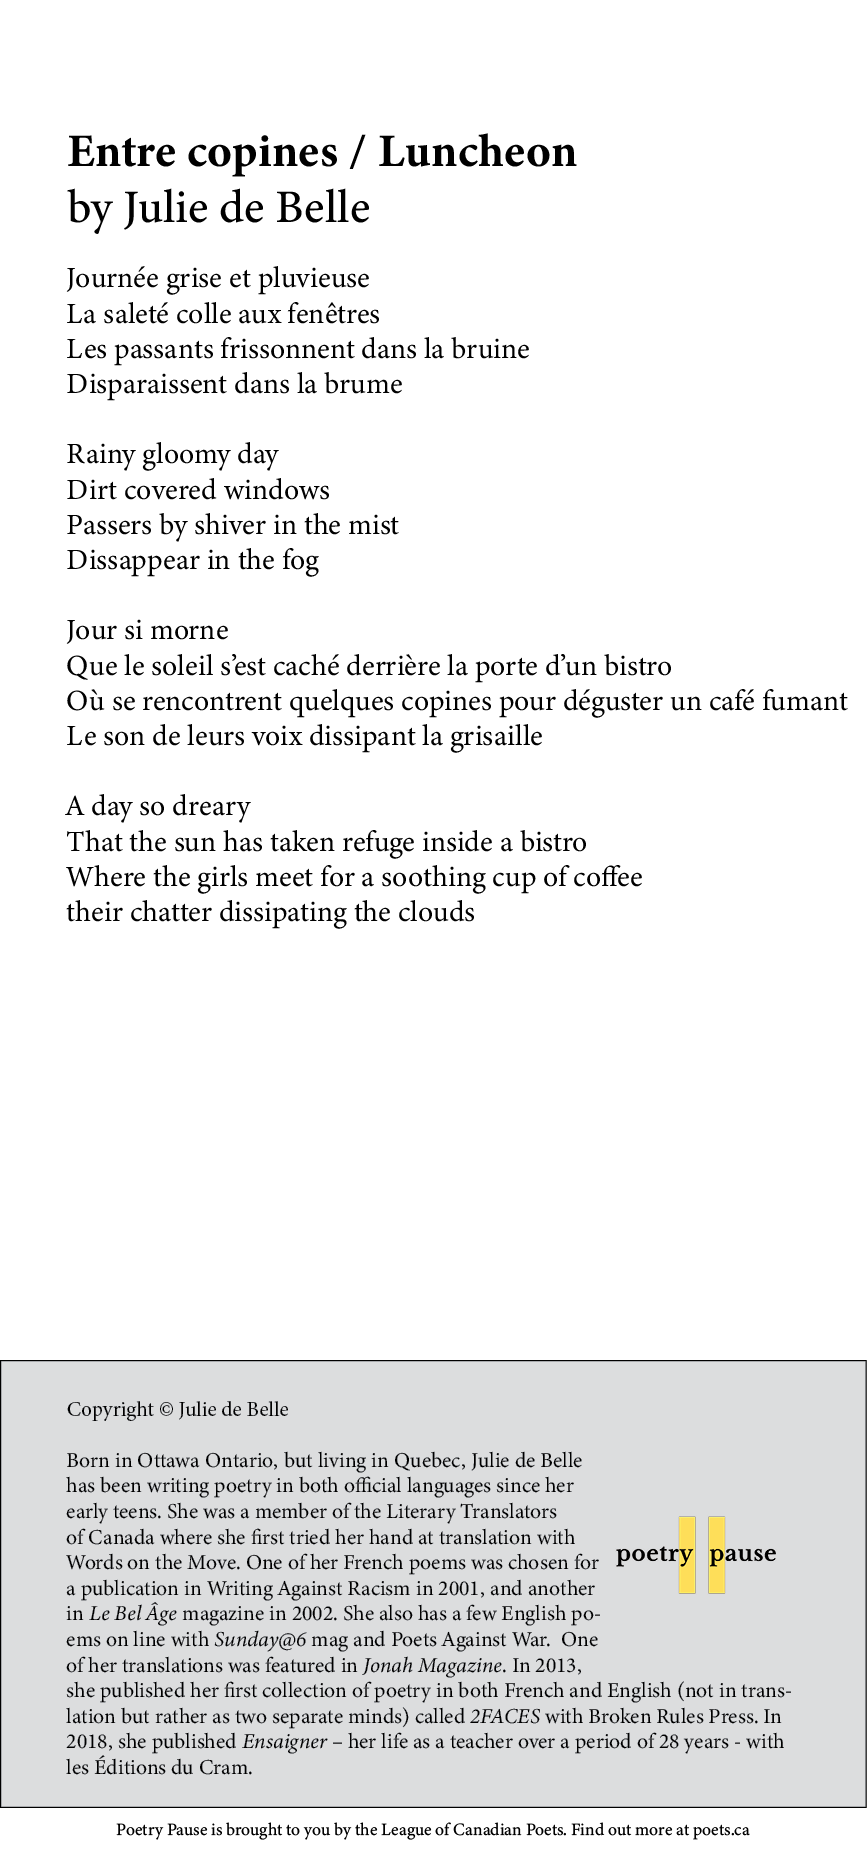 Poem title: Entre copines / Luncheon Poet name: Julie de Belle Poem Begins: Journée grise et pluvieuse La saleté colle aux fenêtres Les passants frissonnent dans la bruine Disparaissent dans la brume Rainy gloomy day Dirt covered windows Passers by shiver in the mist Dissappear in the fog Jour si morne Que le soleil s'est caché derrière la porte d'un bistro Où se rencontrent quelques copines pour déguster un café fumant Le son de leurs voix dissipant la grisaille A day so dreary That the sun has taken refuge inside a bistro Where the girls meet for a soothing cup of coffee their chatter dissipating the clouds End of poem. Credits: Copyright © Julie de Belle Born in Ottawa Ontario, but living in Quebec, Julie de Belle has been writing poetry in both official languages since her early teens. She was a member of the Literary Translators of Canada where she first tried her hand at translation with Words on the Move. One of her French poems was chosen for a publication in Writing Against Racism in 2001, and another in Le Bel Âge magazine in 2002. She also has a few English poems on line with Sunday@6 mag and Poets Against War. One of her translations was featured in Jonah Magazine. In 2013, she published her first collection of poetry in both French and English (not in translation but rather as two separate minds) called 2FACES with Broken Rules Press. In 2018, she published Ensaigner – her life as a teacher over a period of 28 years - with les Éditions du Cram.